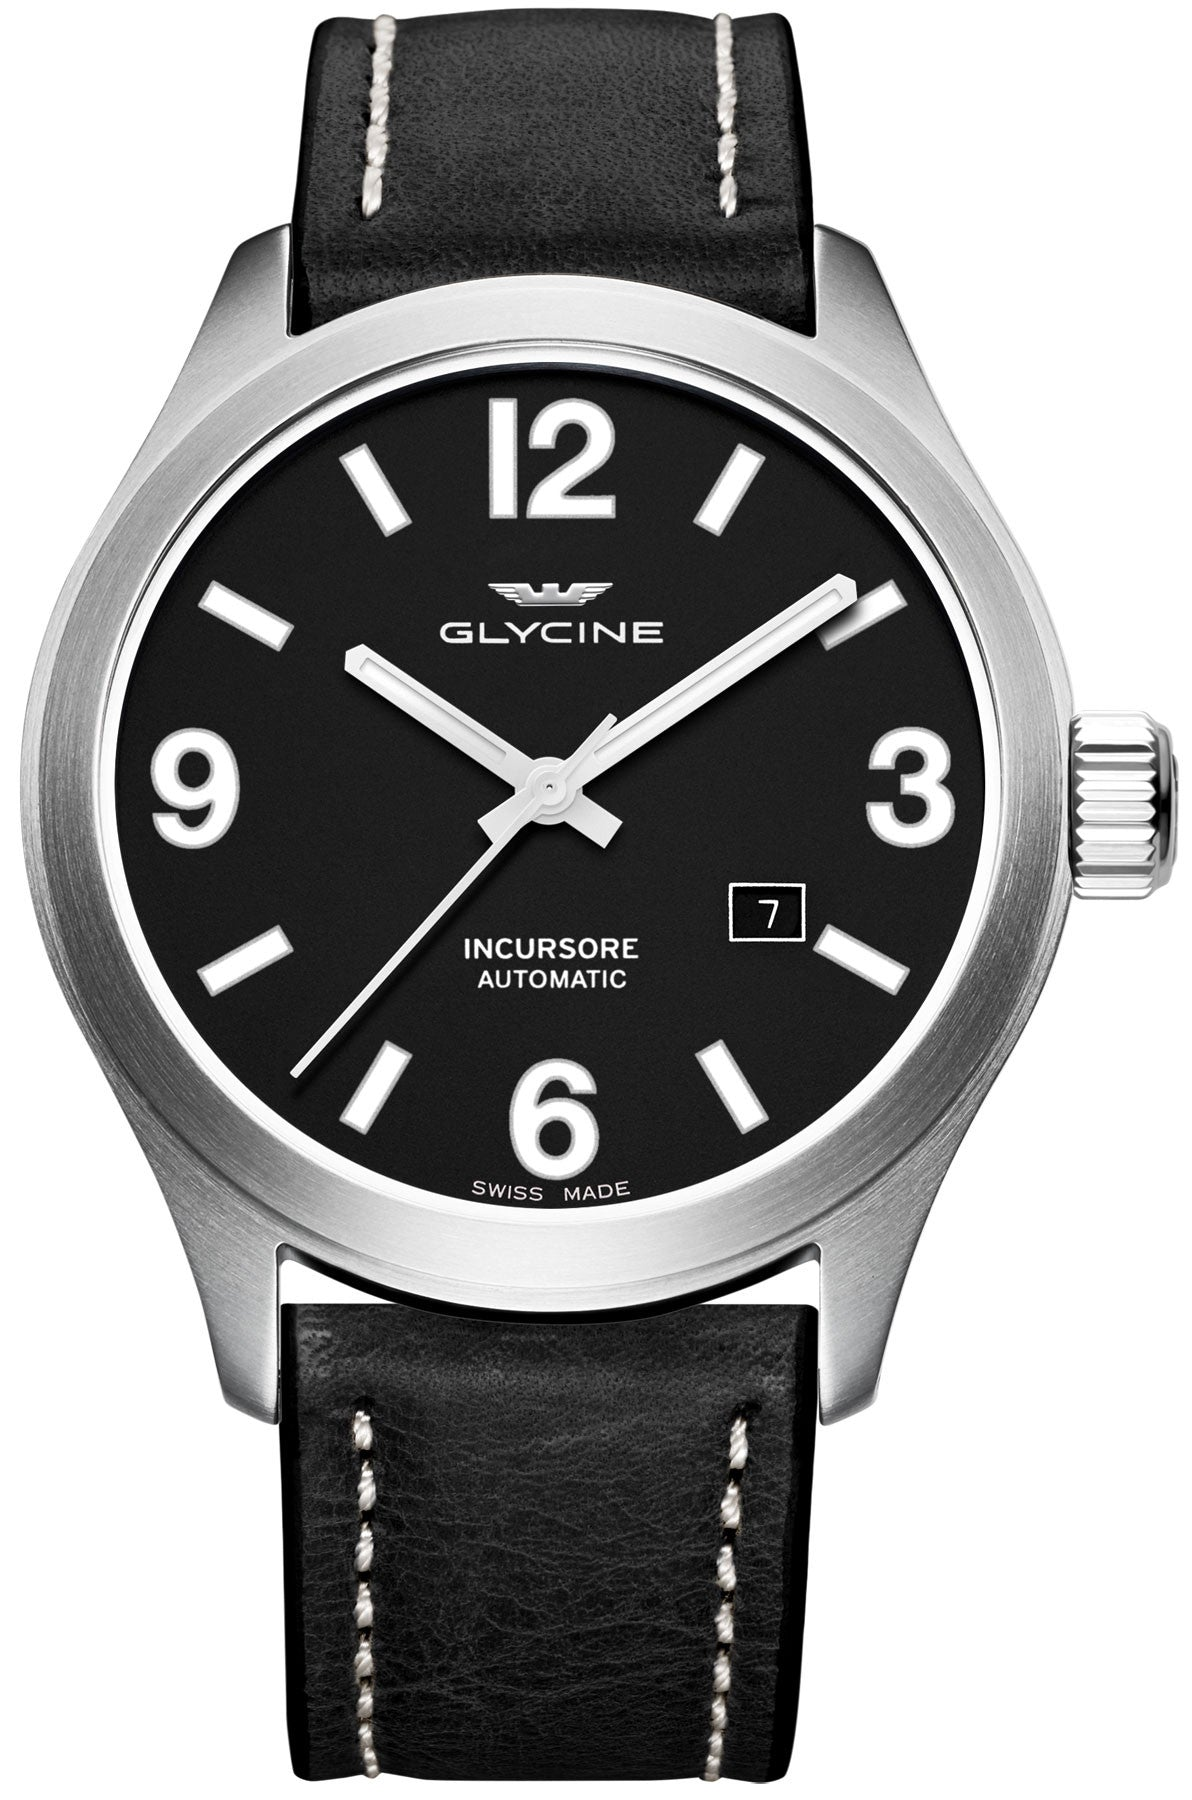 Glycine Watch Incursore